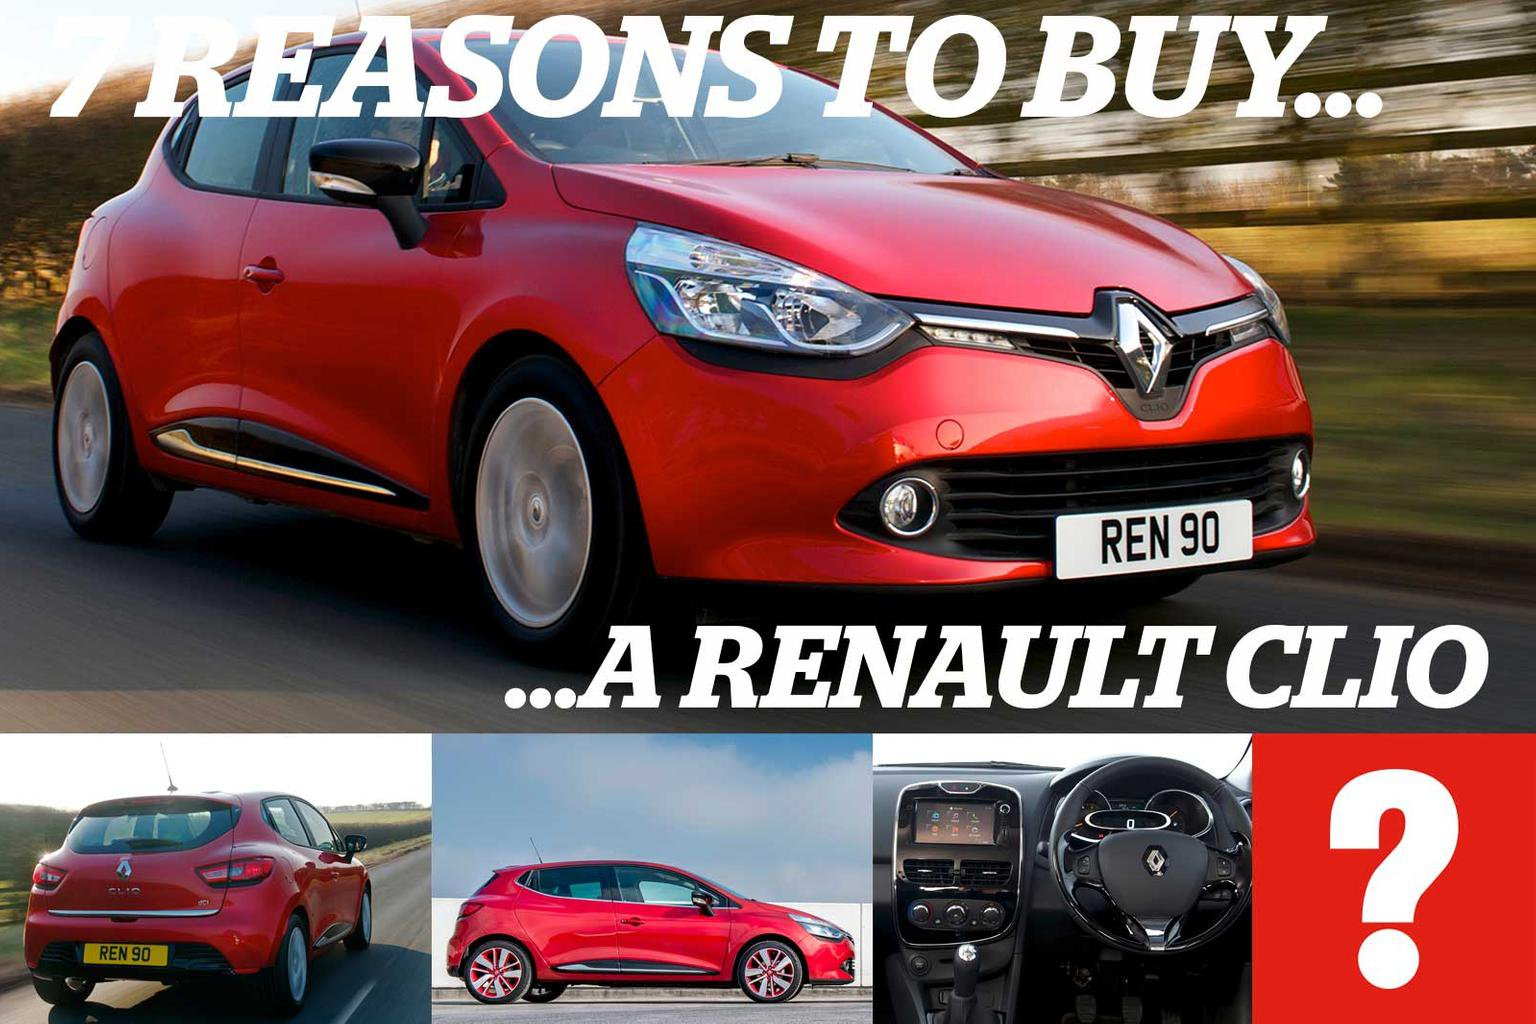 7 reasons to buy a Renault Clio